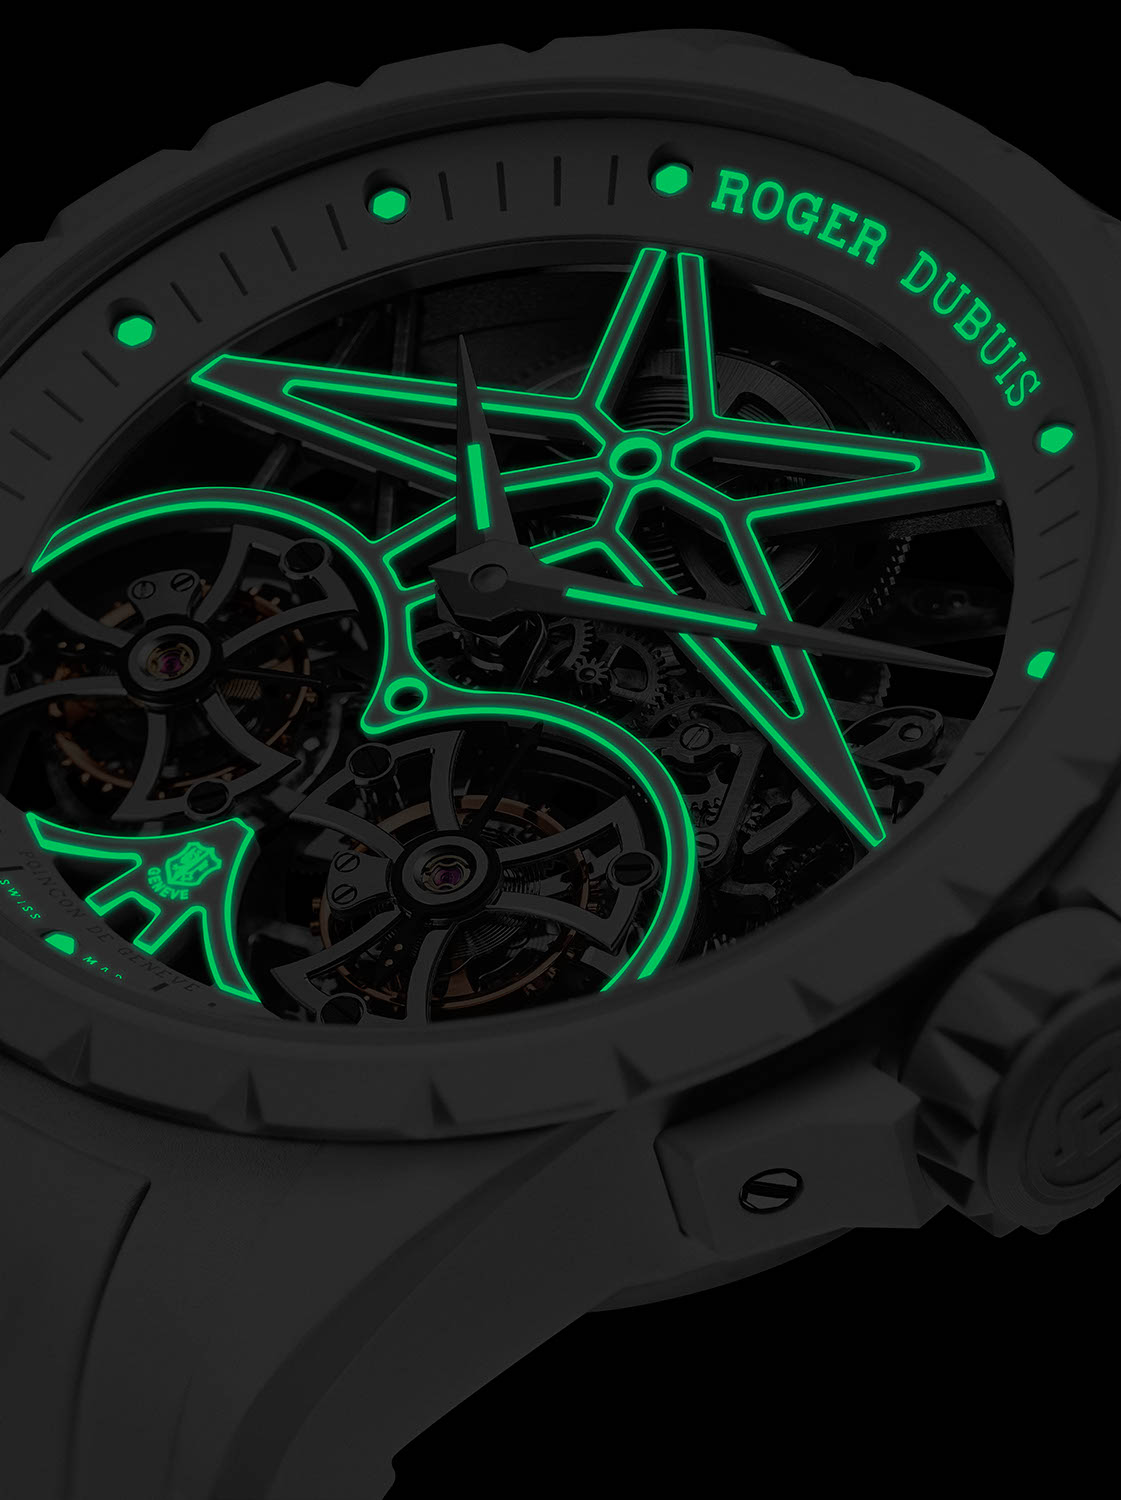 Roger Dubuis Excalibur Twofold showing off it's Super-LumiNova treated bridges and strap in the dark